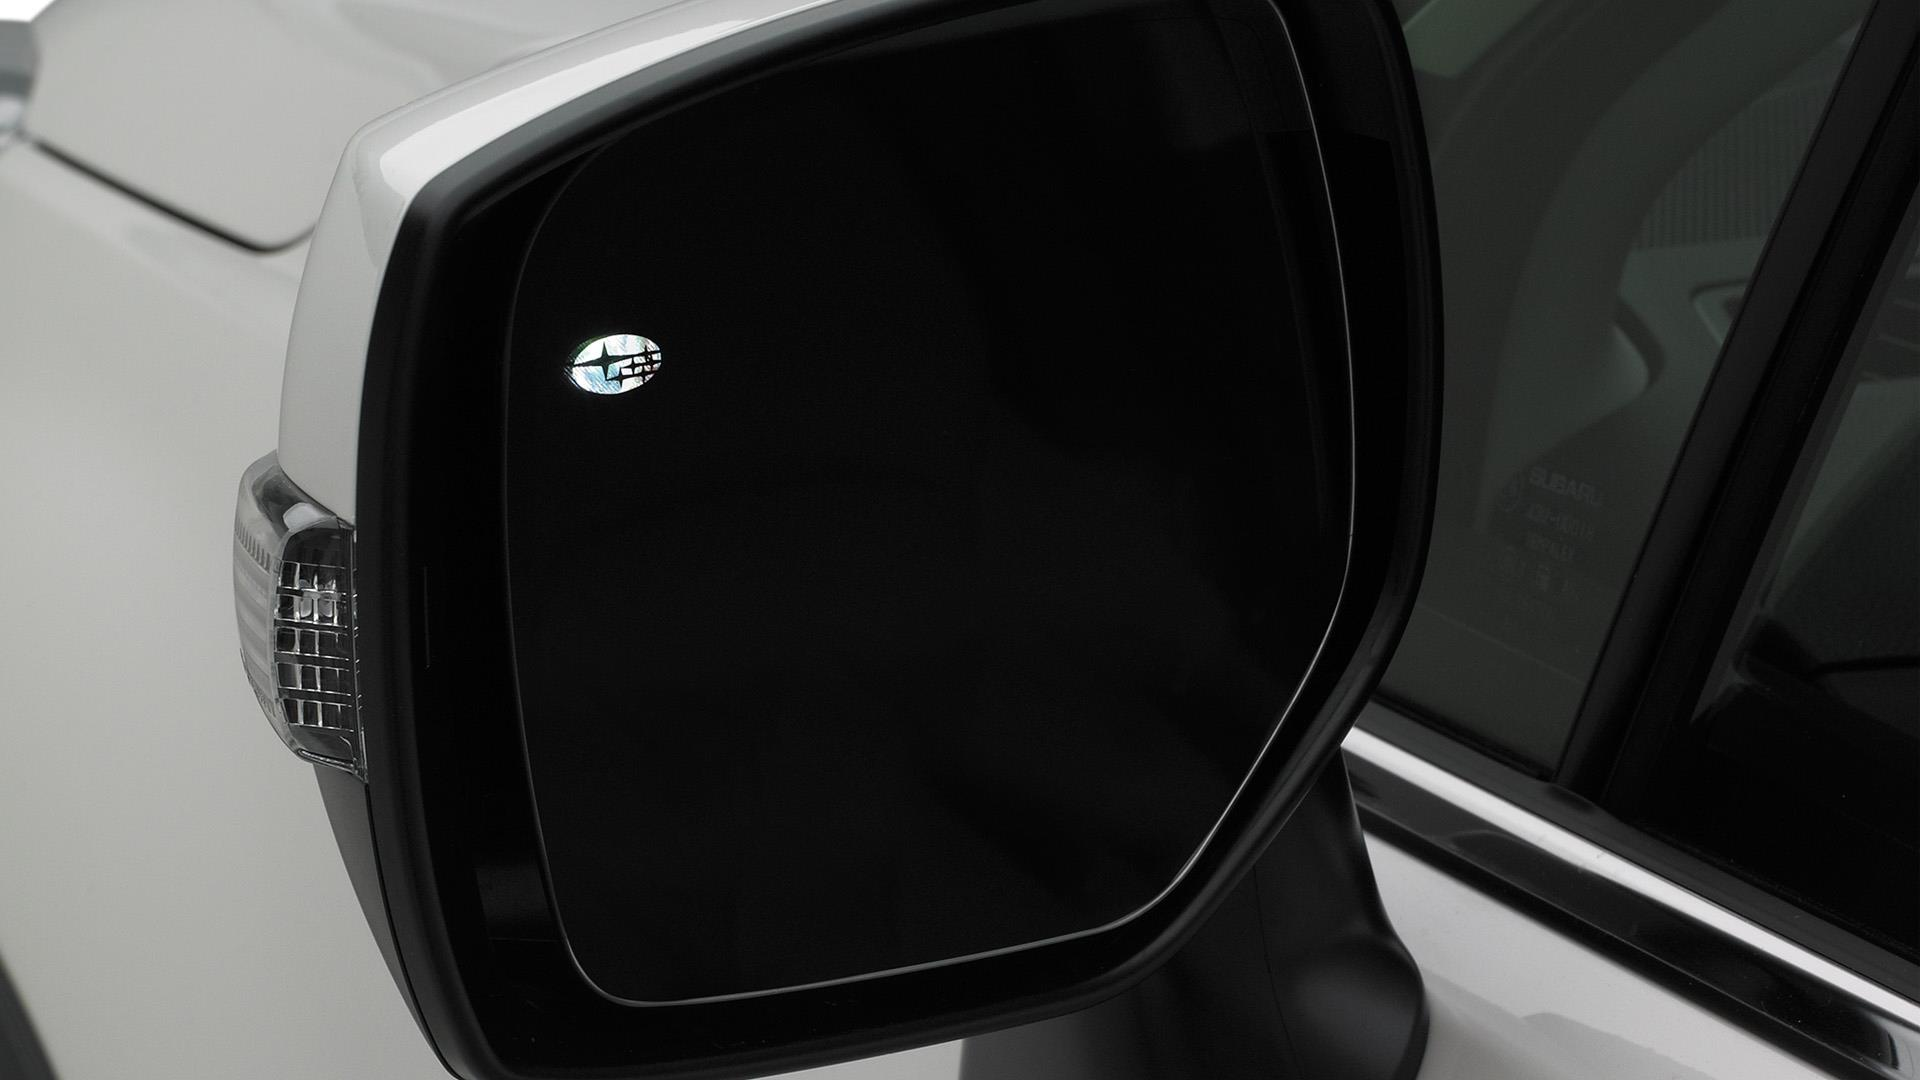 Subaru Forester Auto Dimming Exterior Mirror With Approach